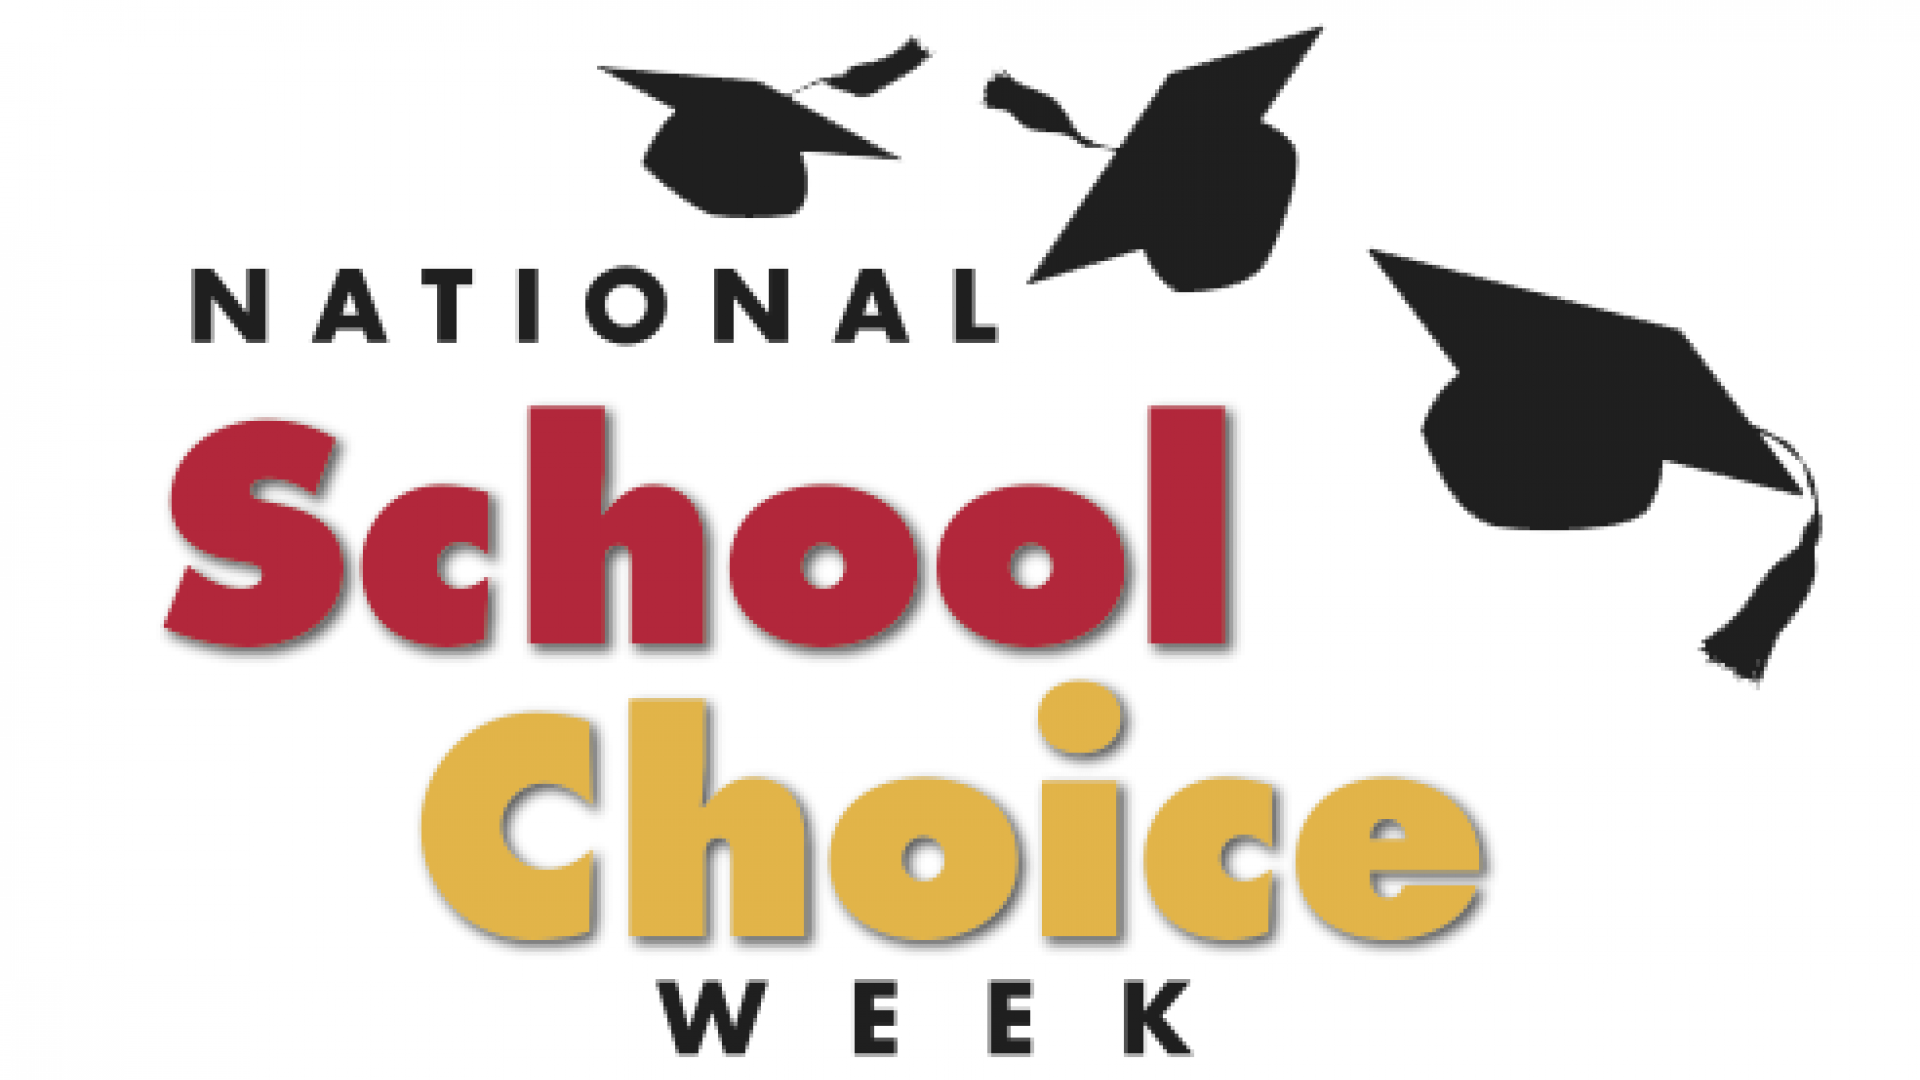 Scholarship Prep Celebrates National School Choice Week